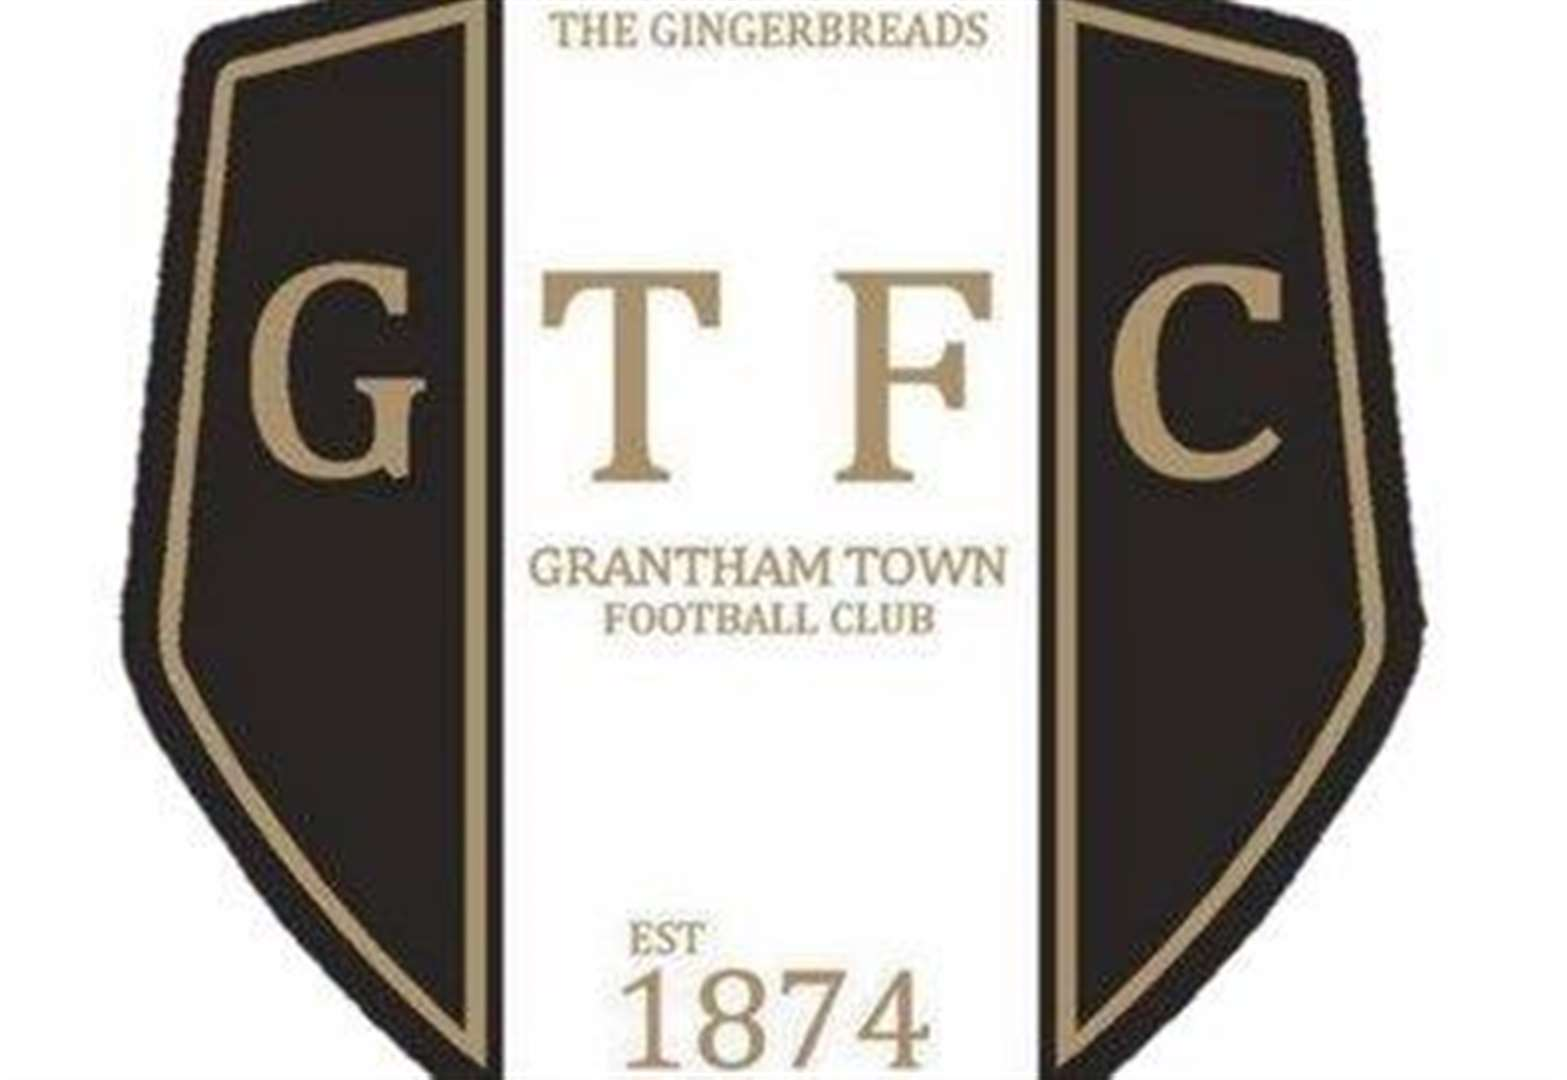 Fans to enjoy price crunch for Gingerbreads home games